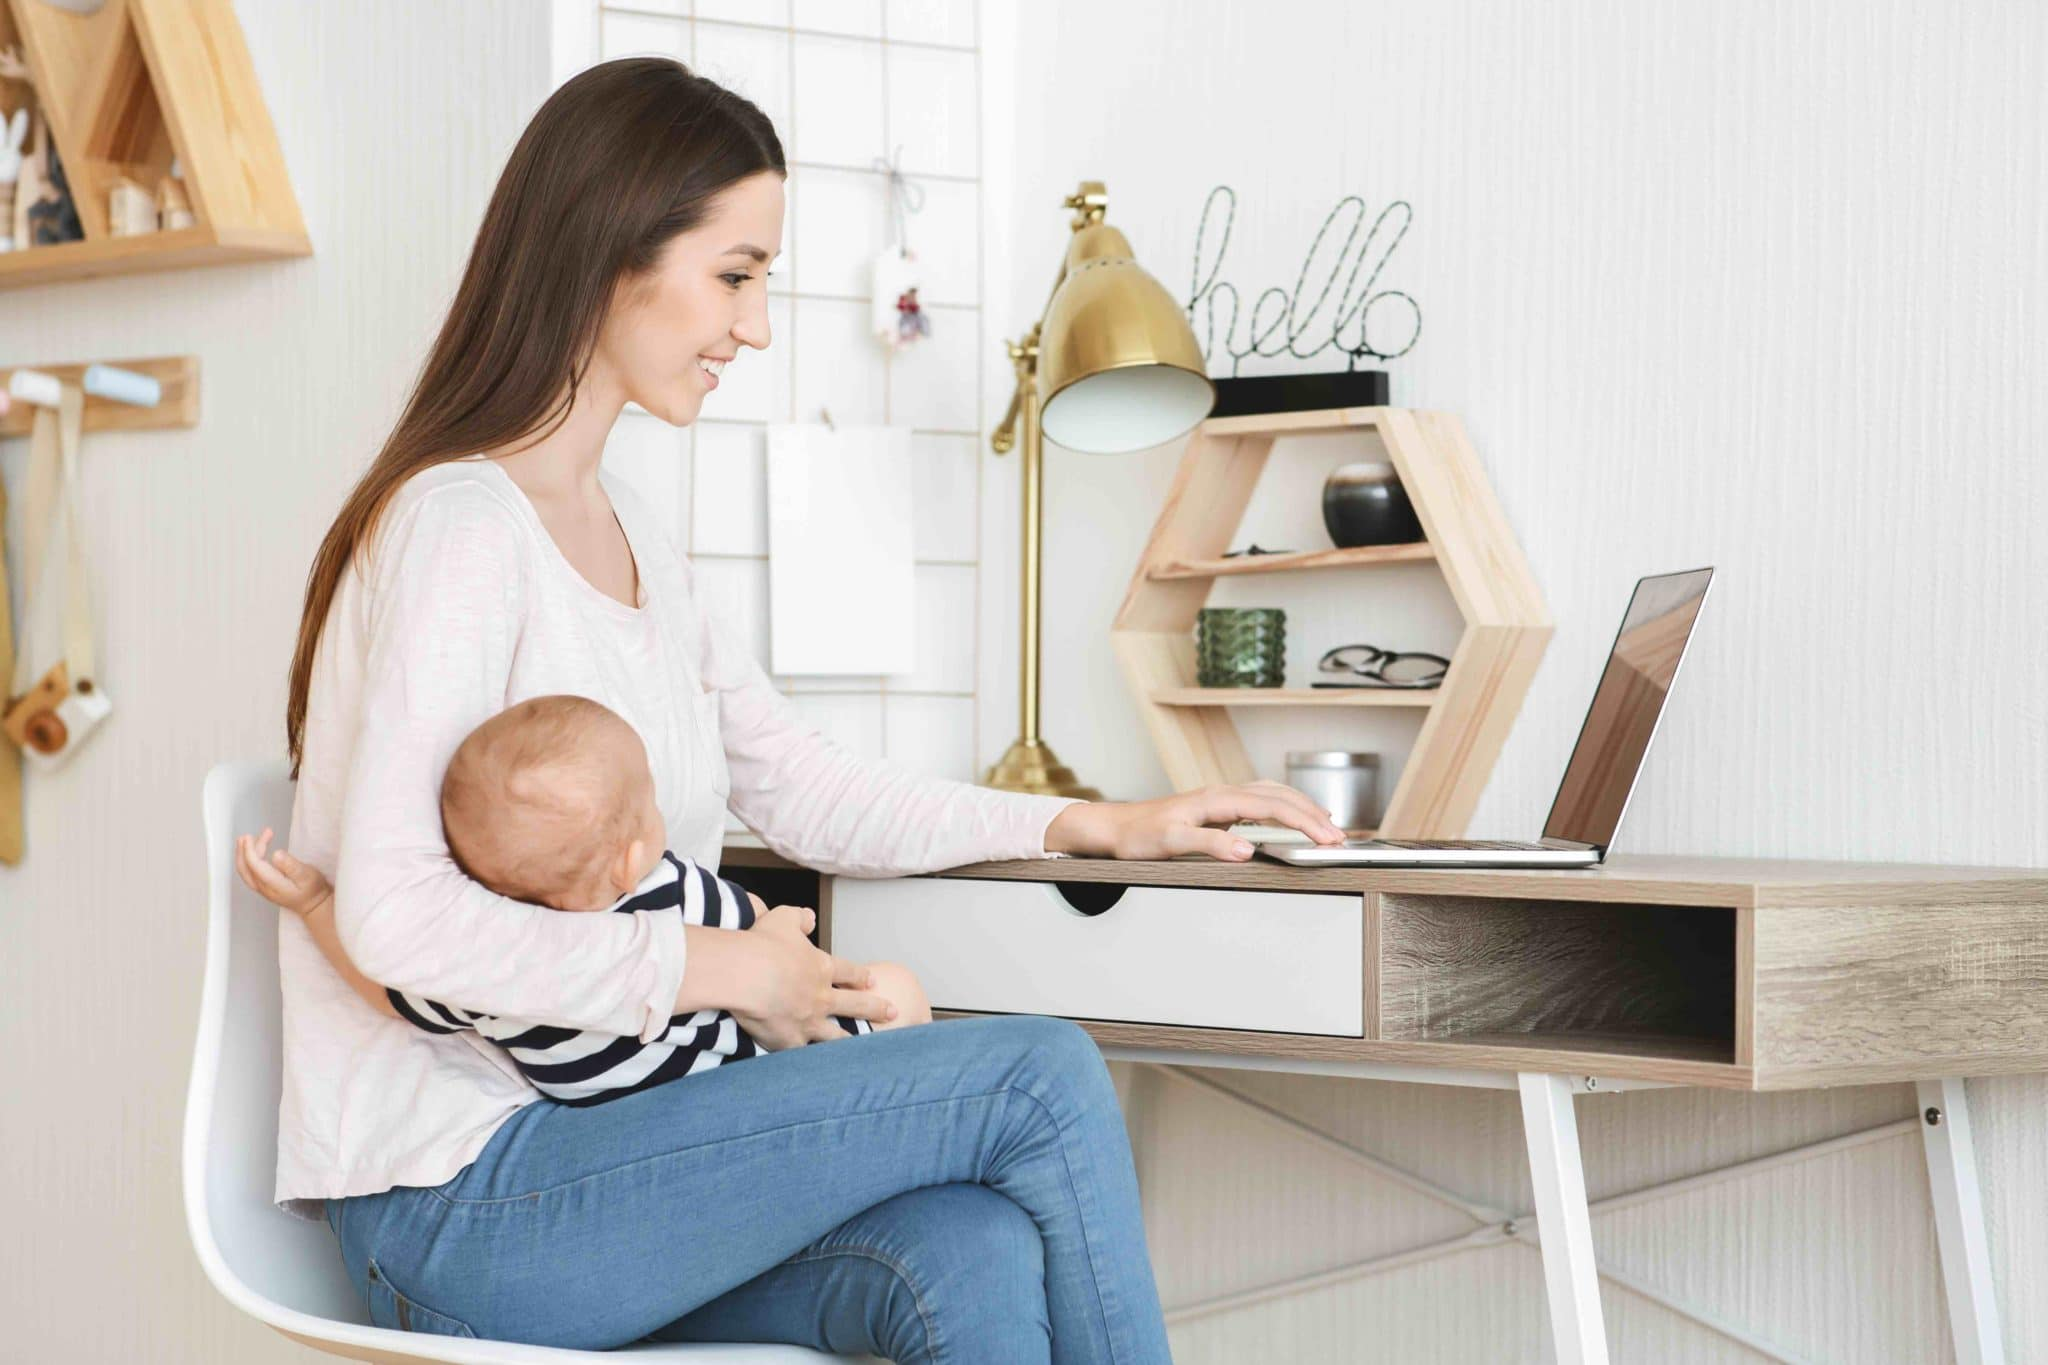 How to Deflect the Doubled-Edged Sword as a Working Mom